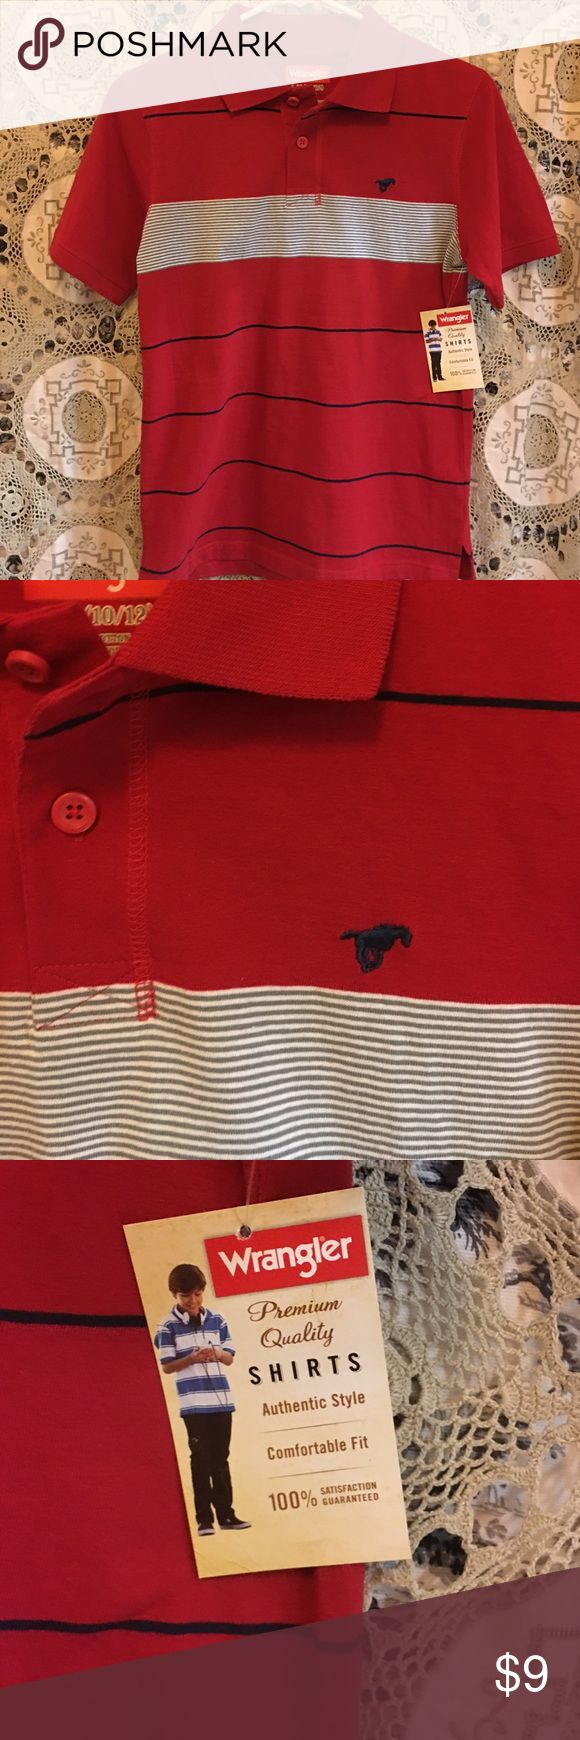 Wrangler buts red striped polo, Easter Great red stripe Wrangler polo shirt Wrangler Shirts & Tops Polos